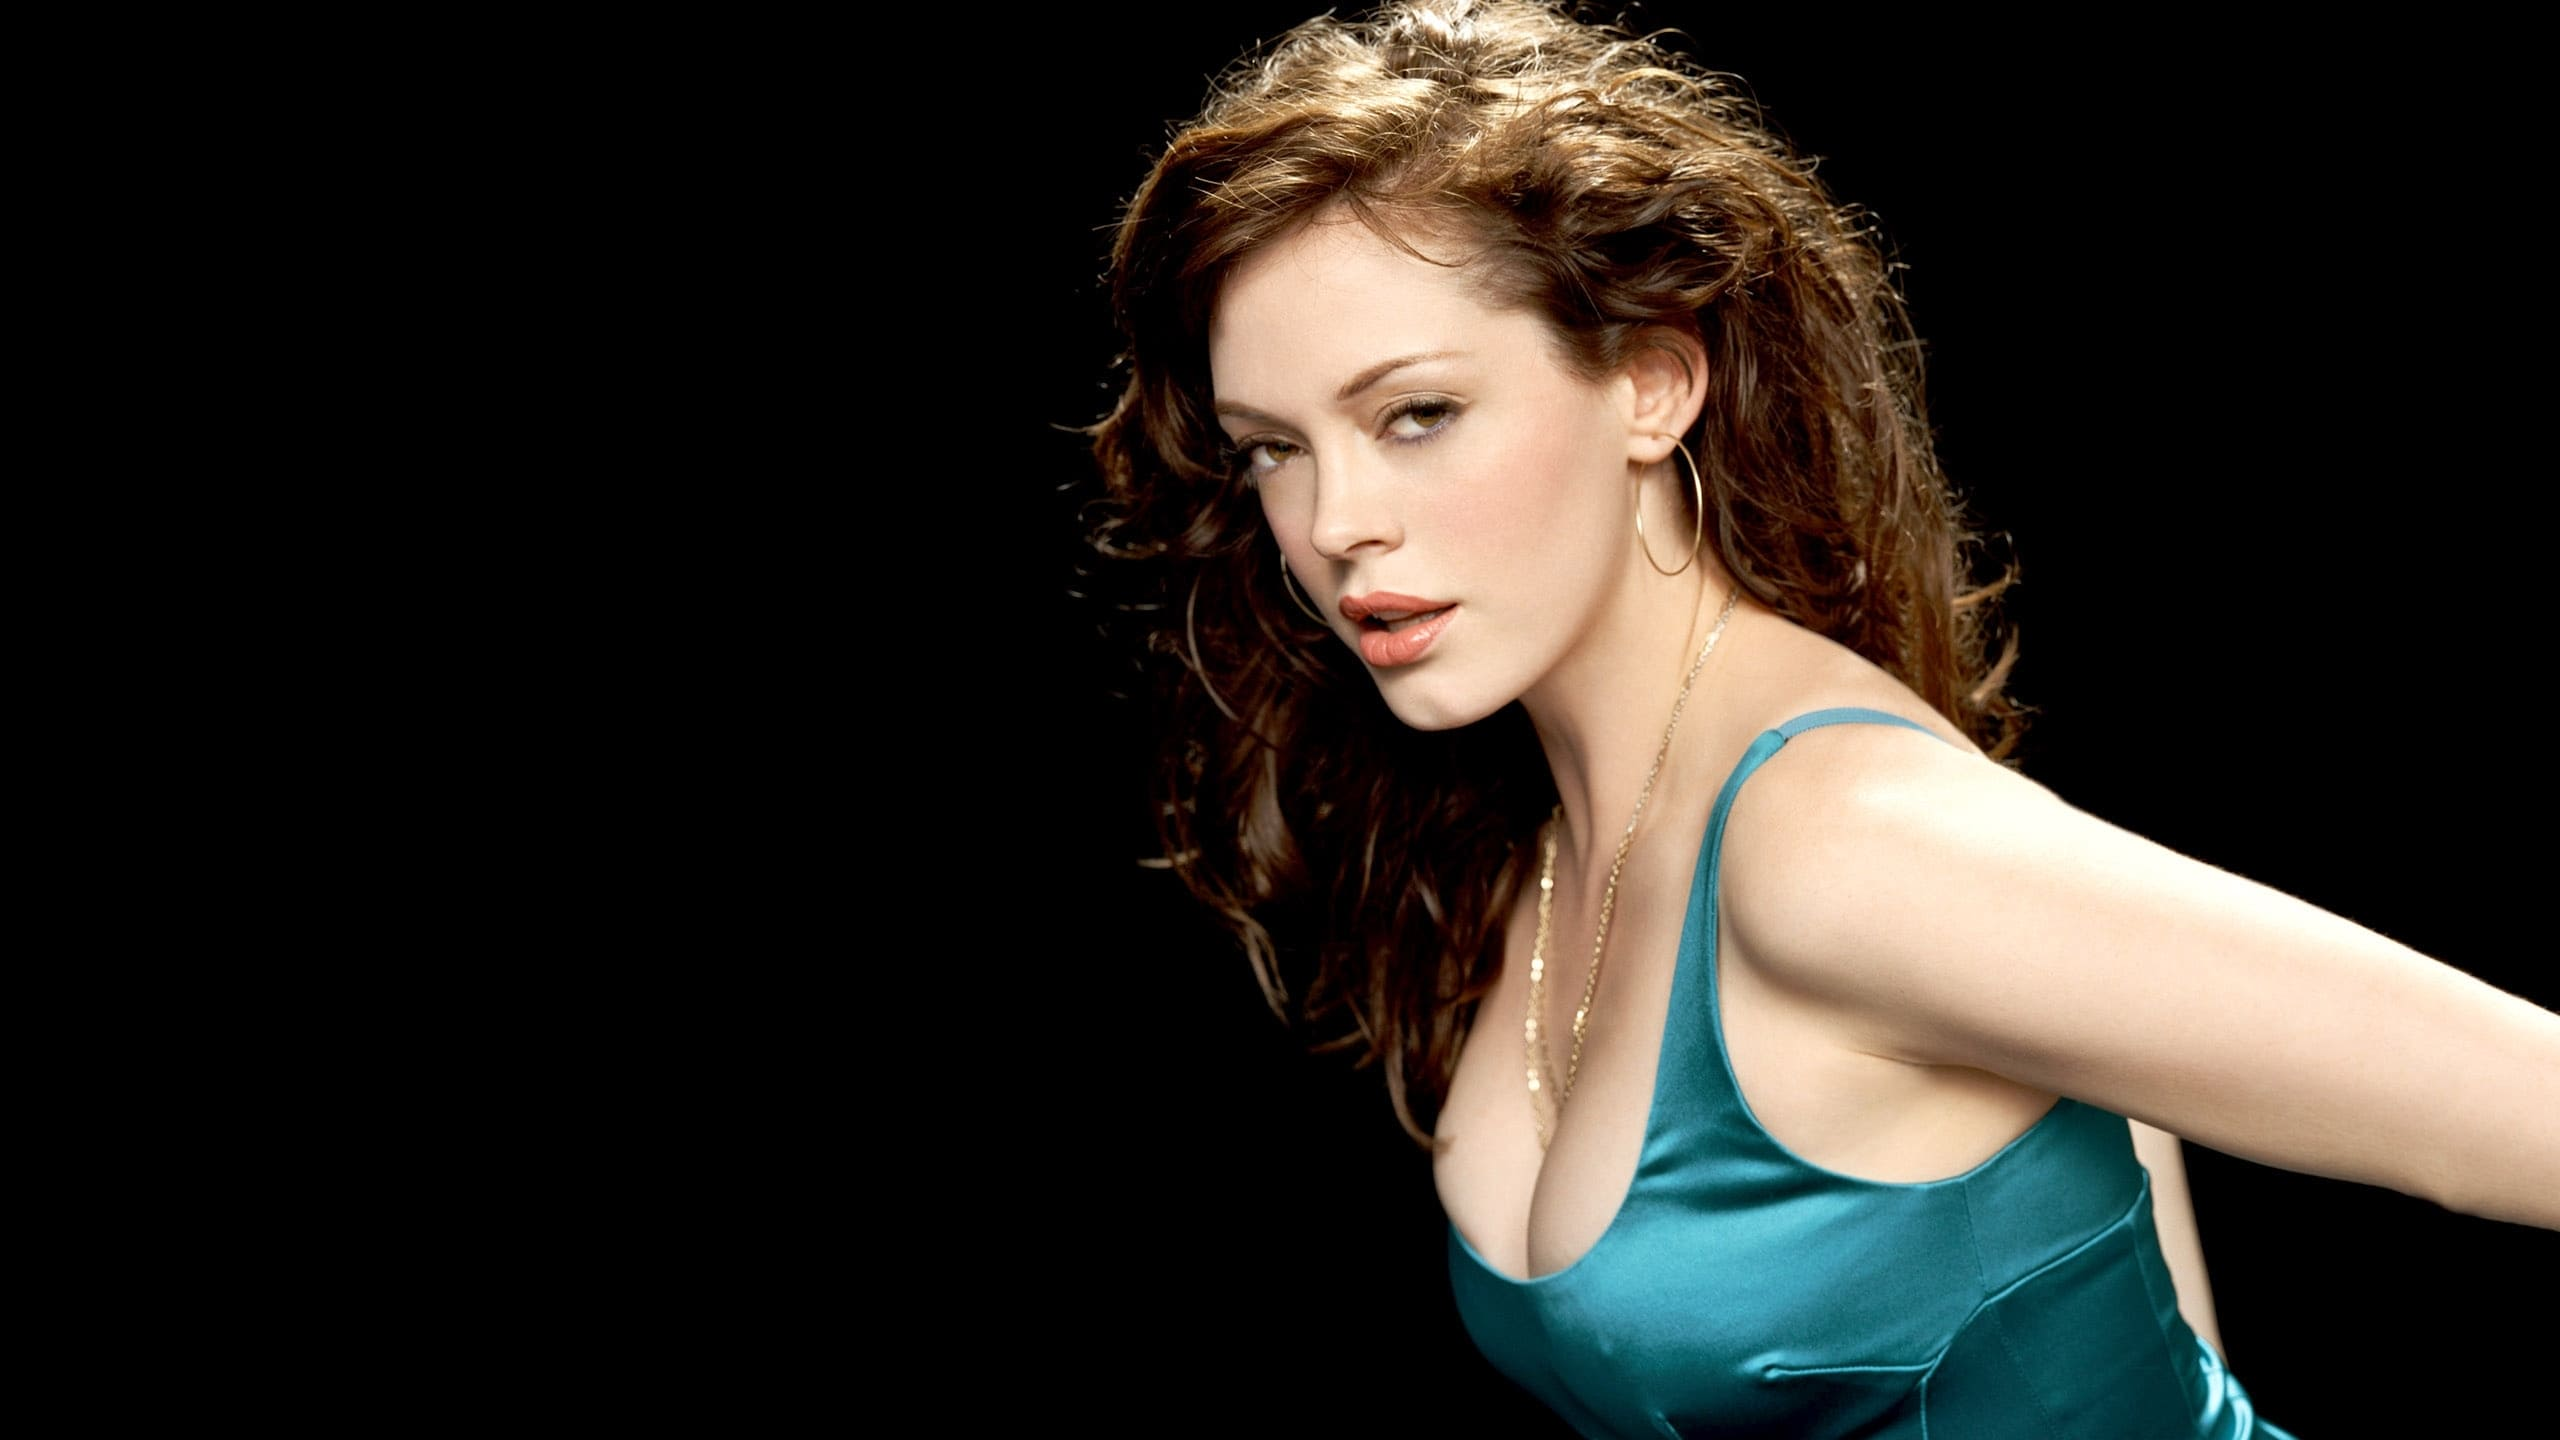 Rose Mcgowan Widescreen